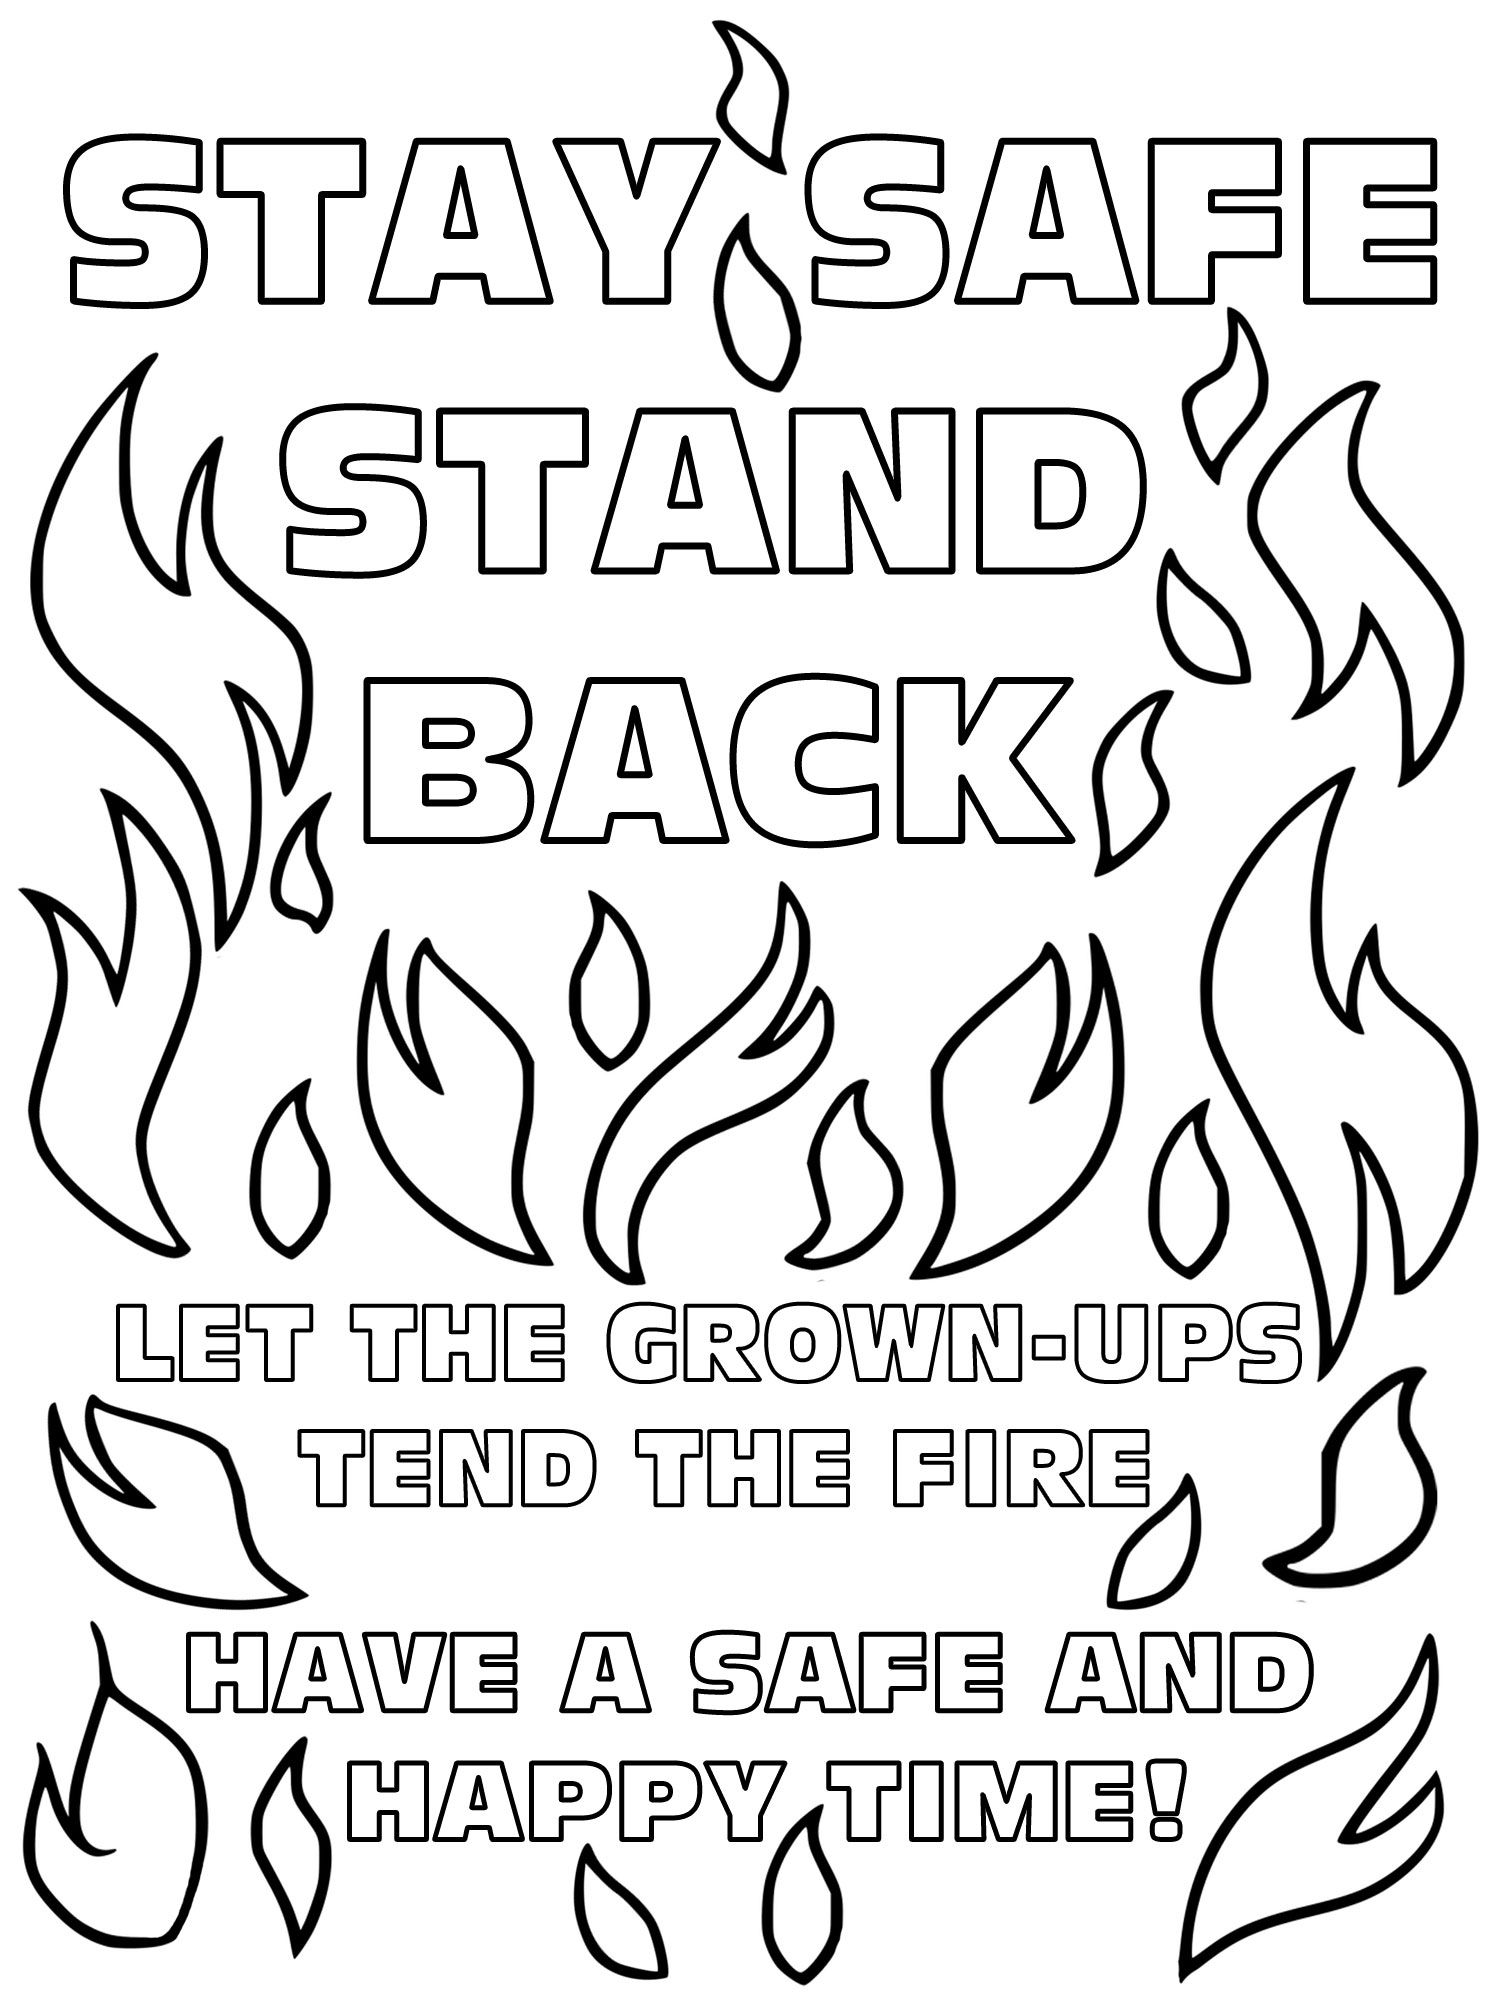 Printable bonfire safety poster for kids to colour in. | Bonfire ...